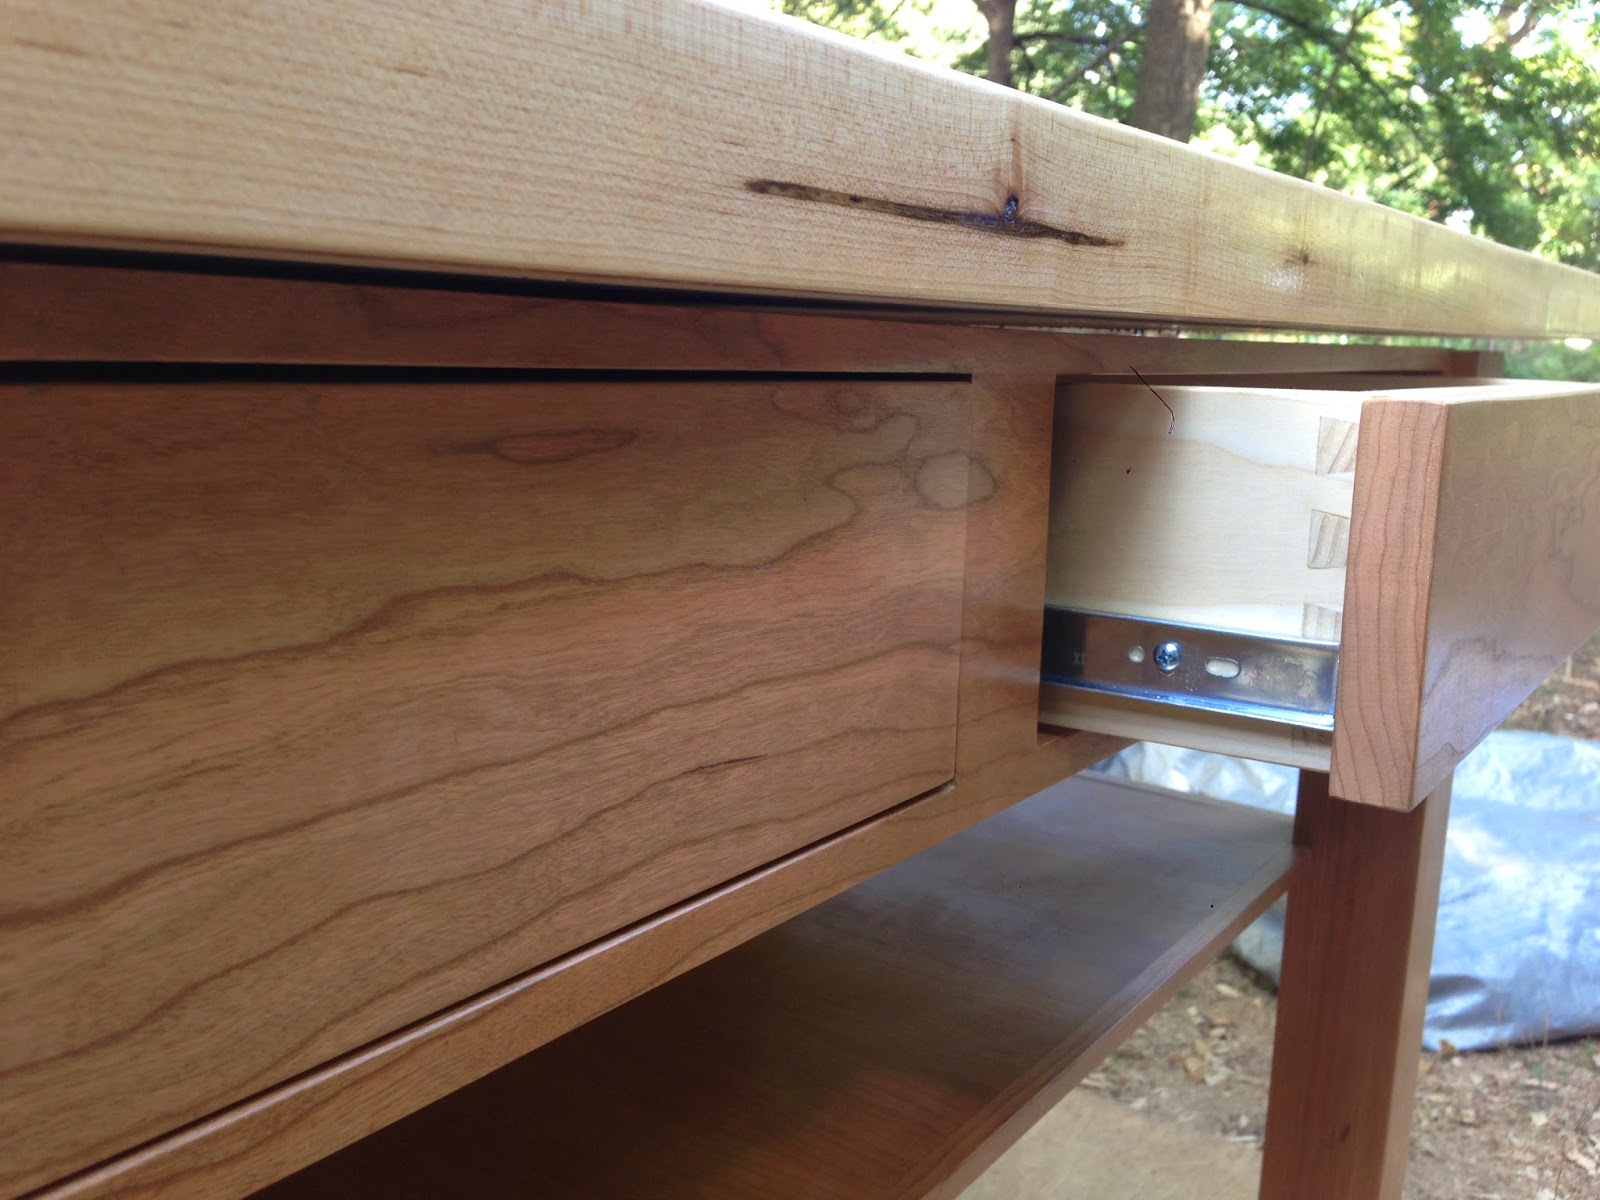 The Drawer Fronts Were Created From One Solid Piece Of Cherry To Maintain A Continuous Grain Pattern